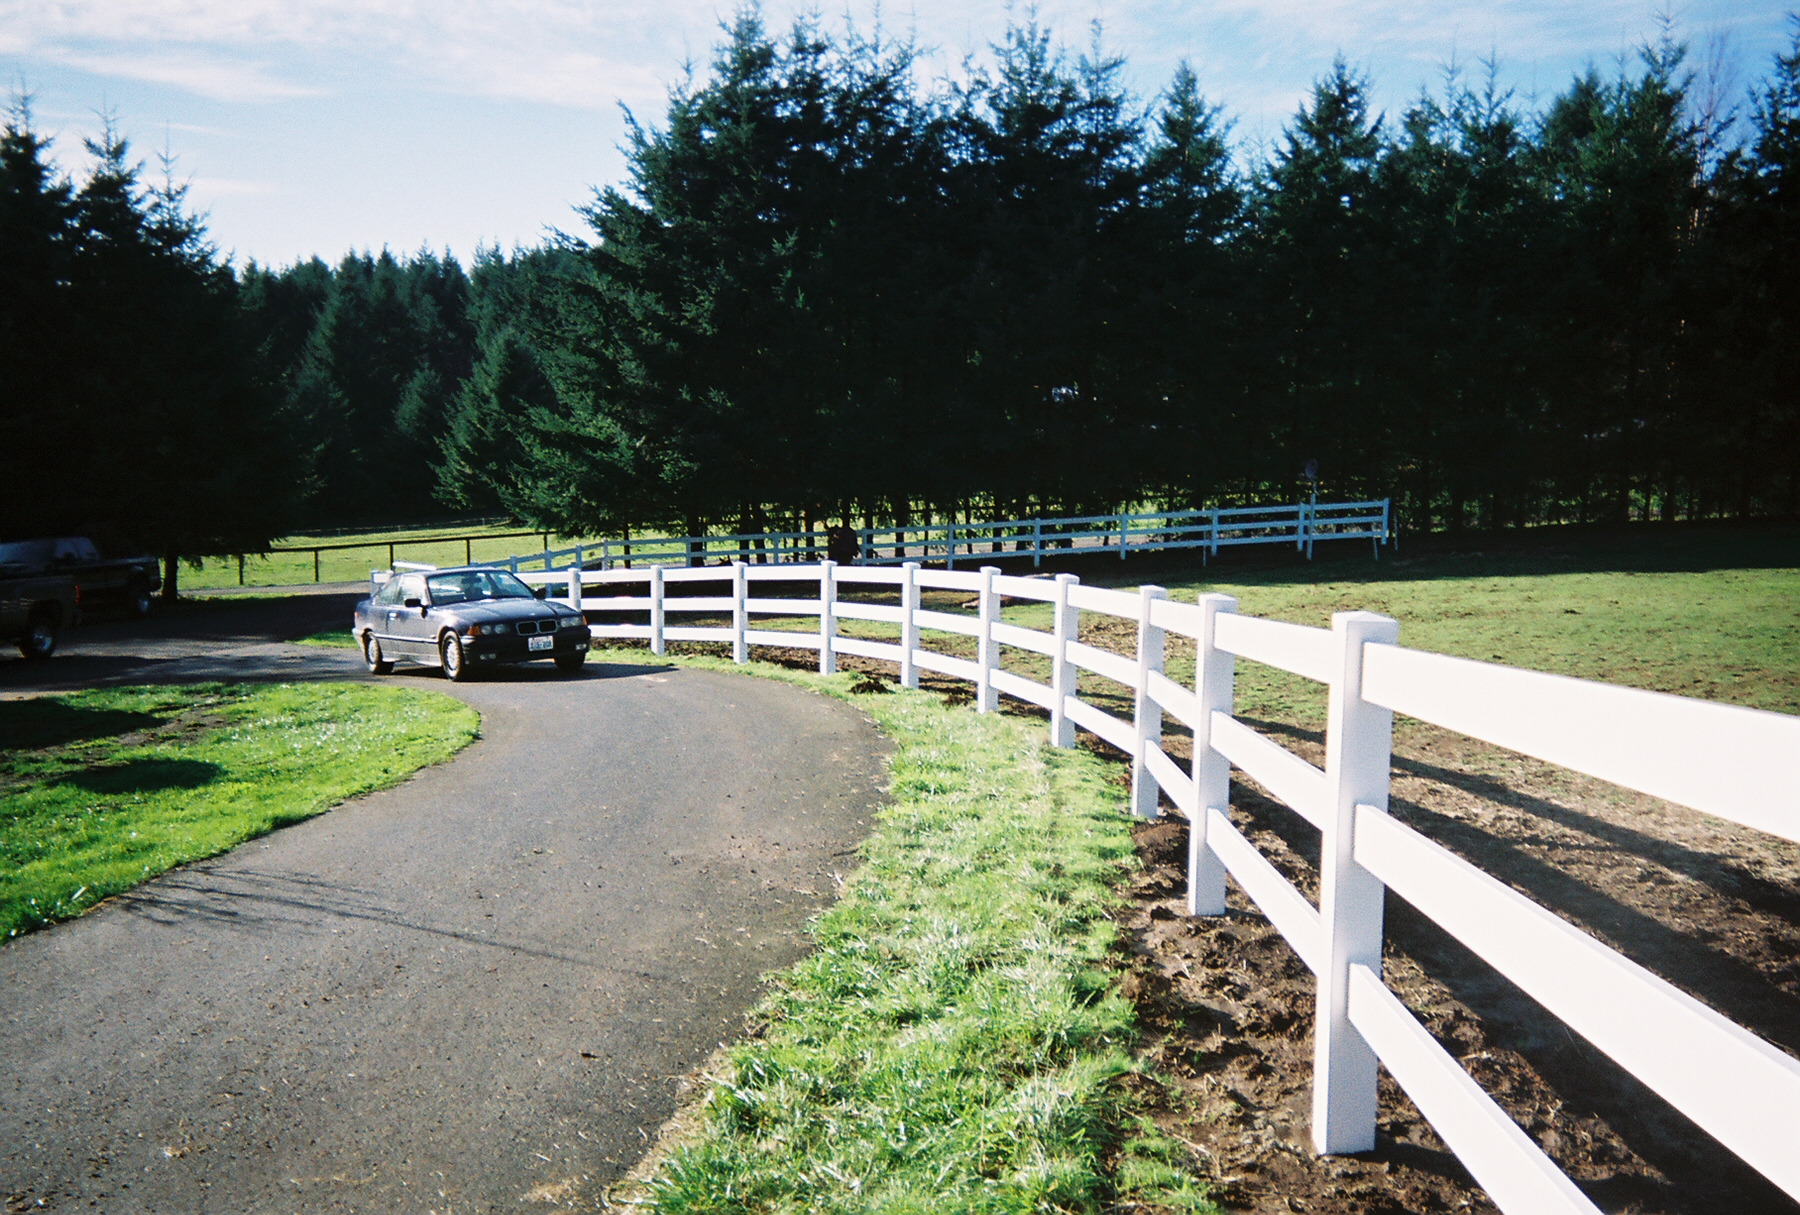 3 Rail white vinyl fence, enhancing the surroundings. Contact Vancouver Washington's Best Fence Builders. The Fenceman Fence Company installs wood, vinyl, chain link and ornamental iron fences. We also offer materials for the do it yourselfer.